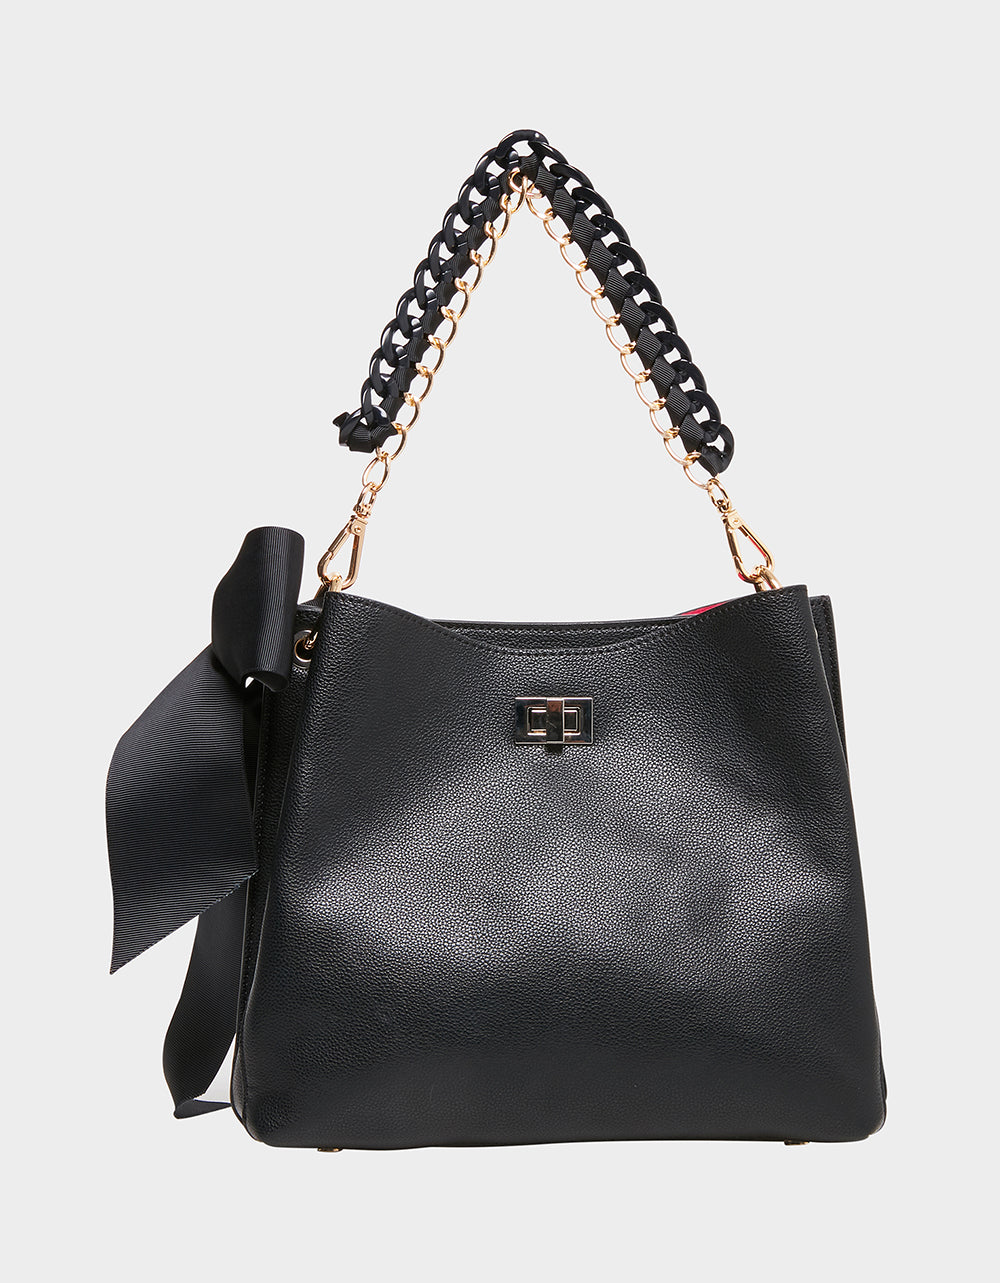 VANITY BUCKET BAG BLACK - HANDBAGS - Betsey Johnson